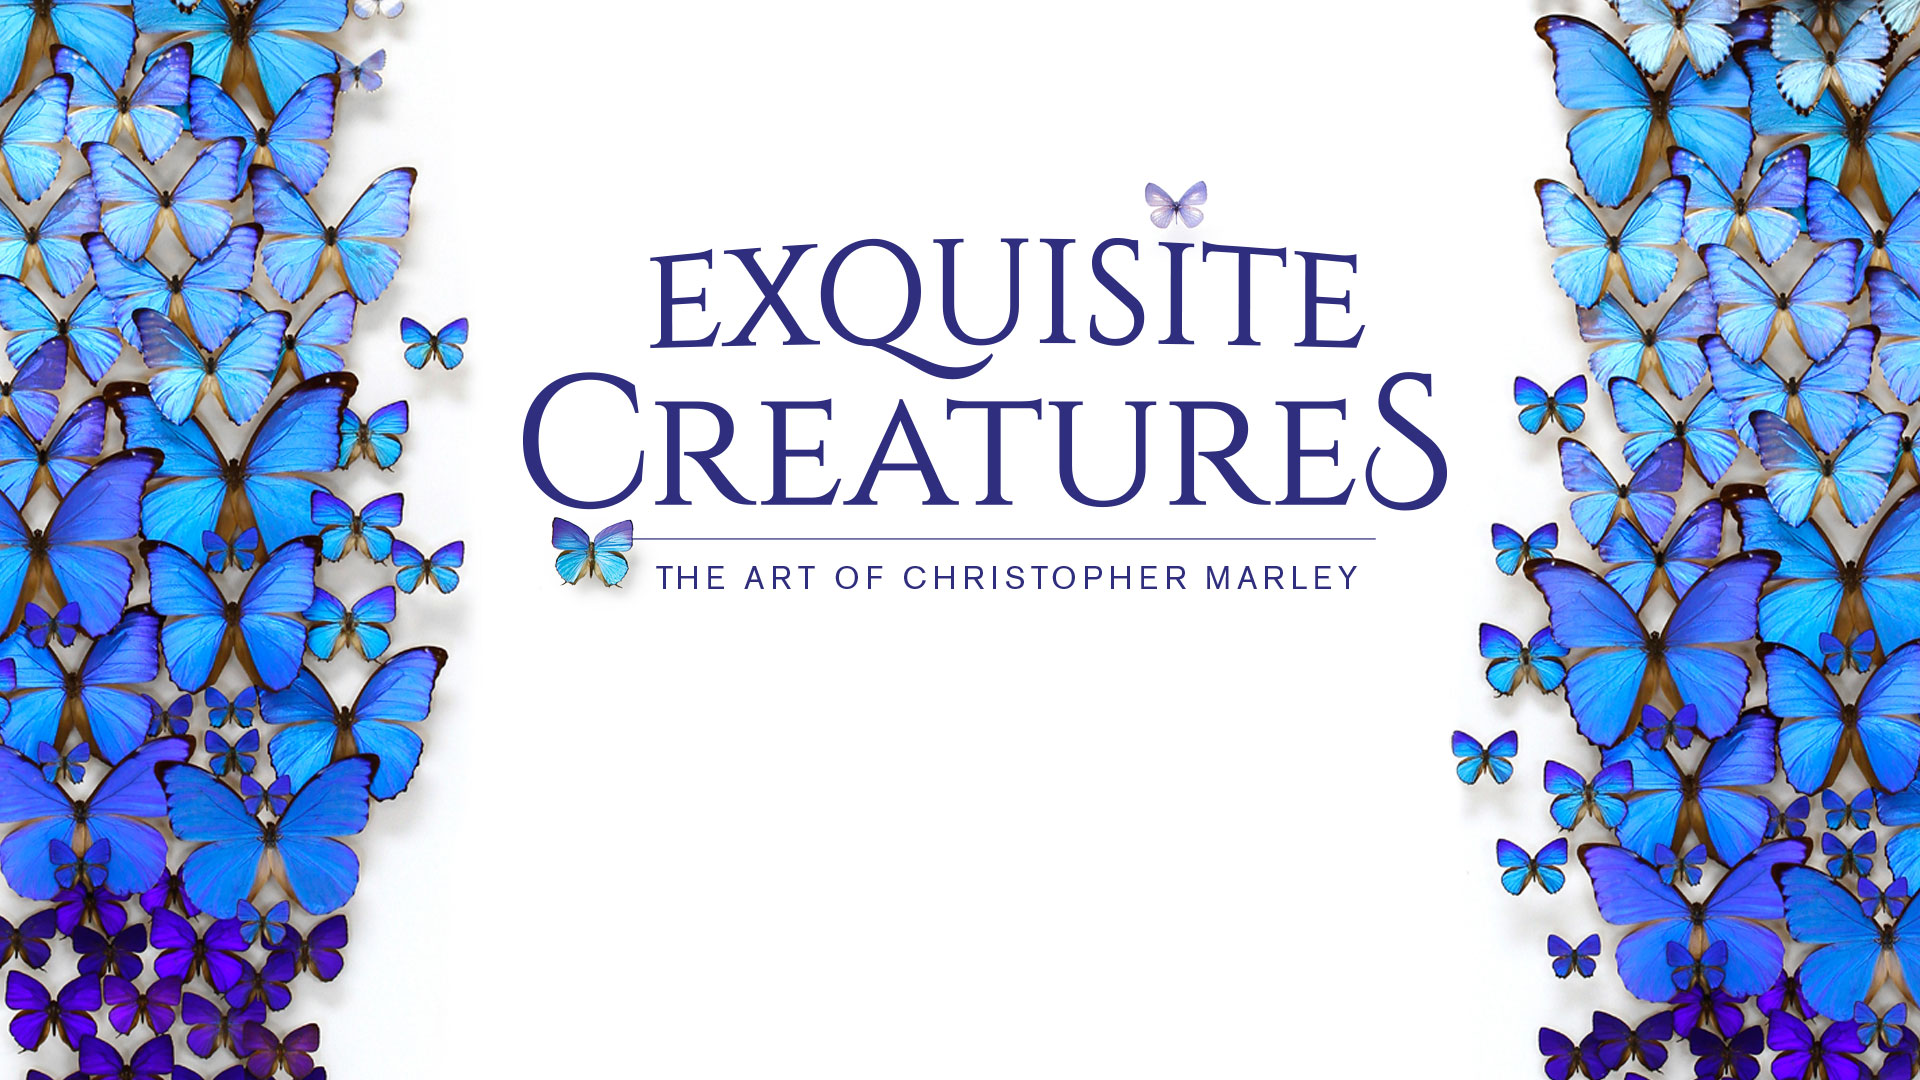 Exquisite Creatures: The Art of Christopher Marley